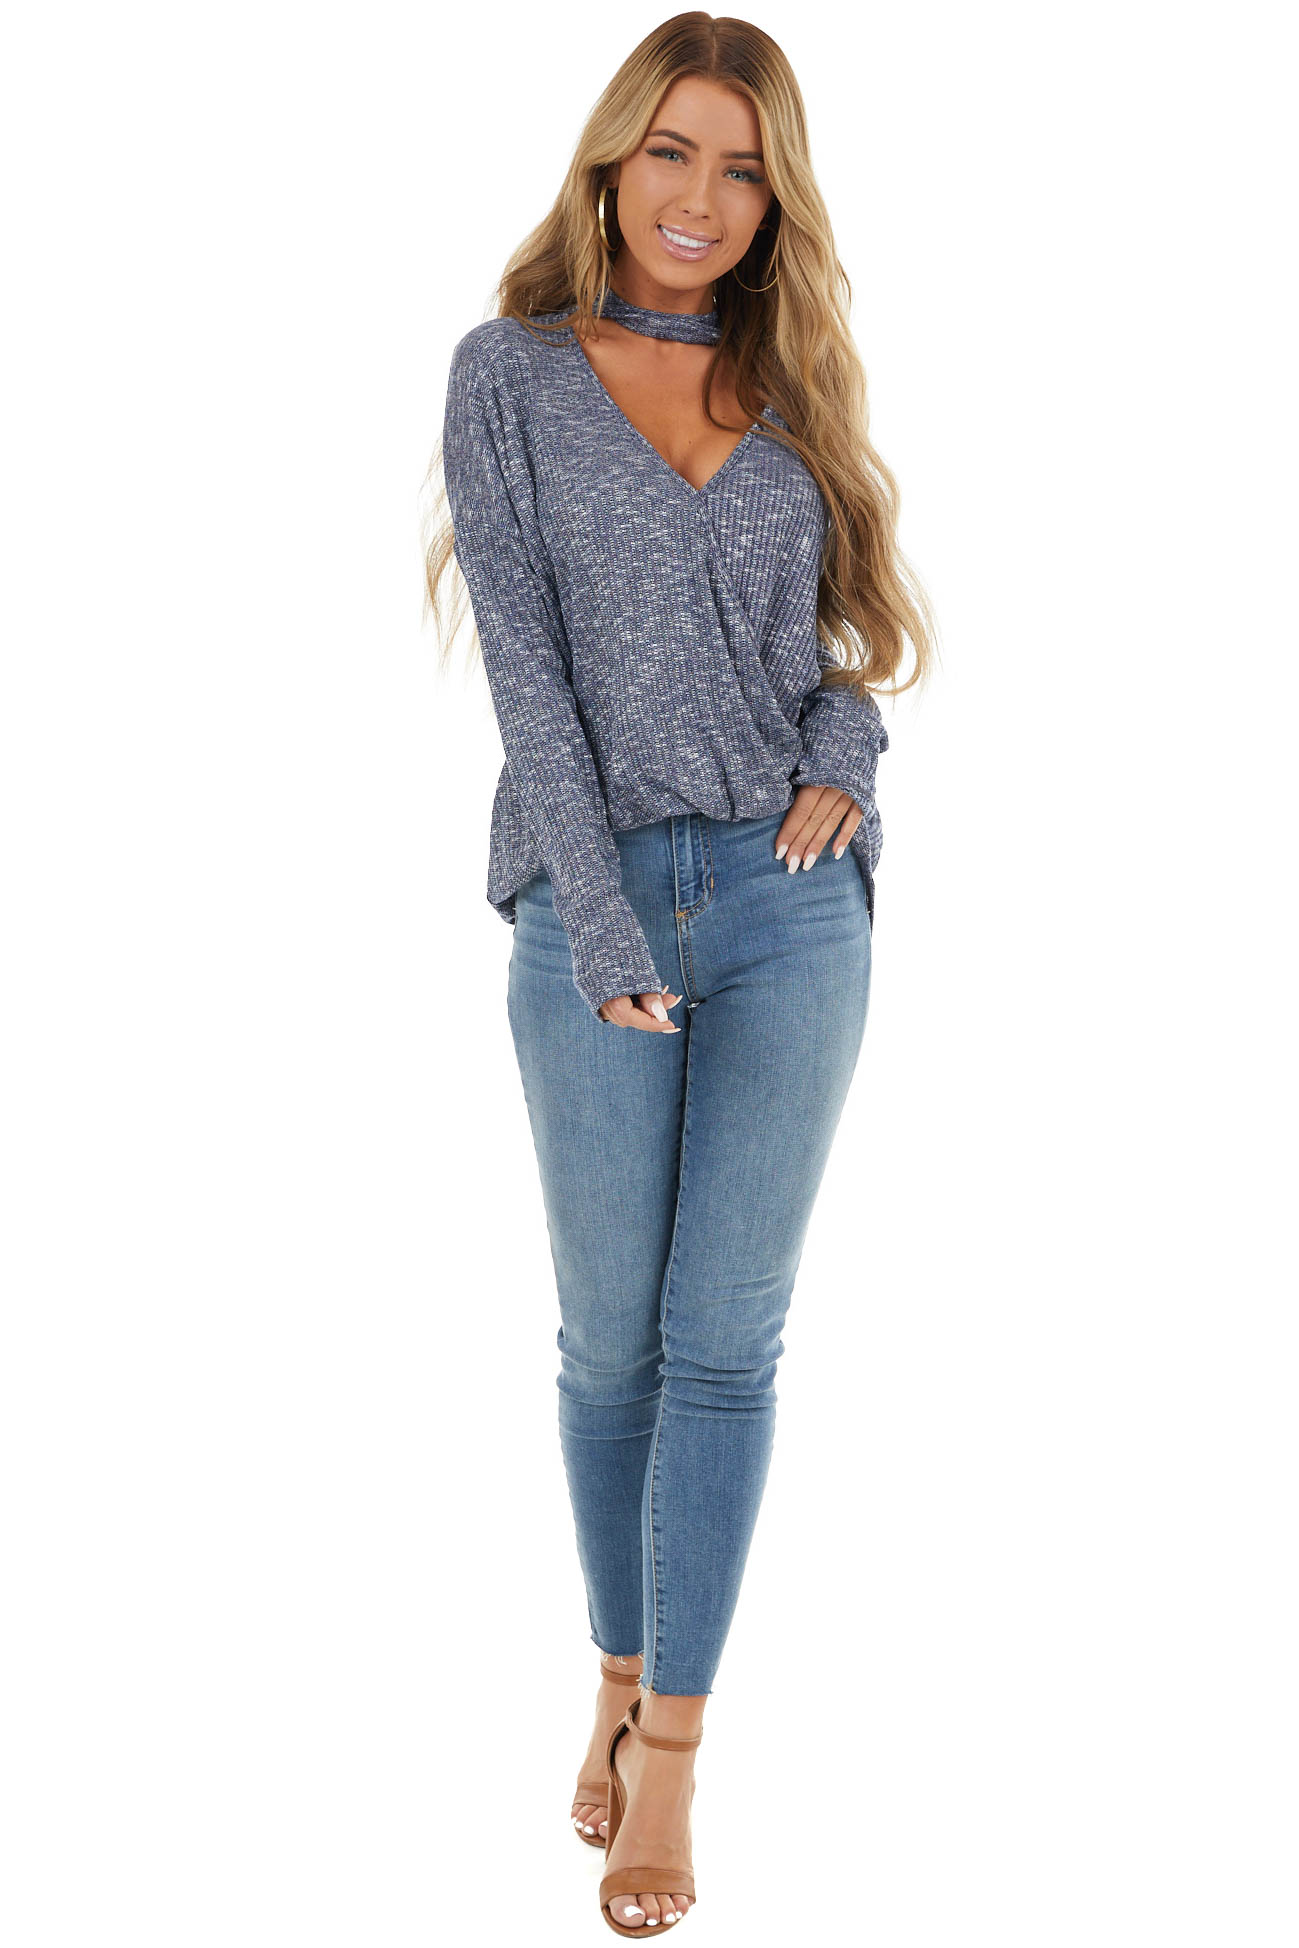 Navy Blue and White Surplice Knit Top with Choker Neckline